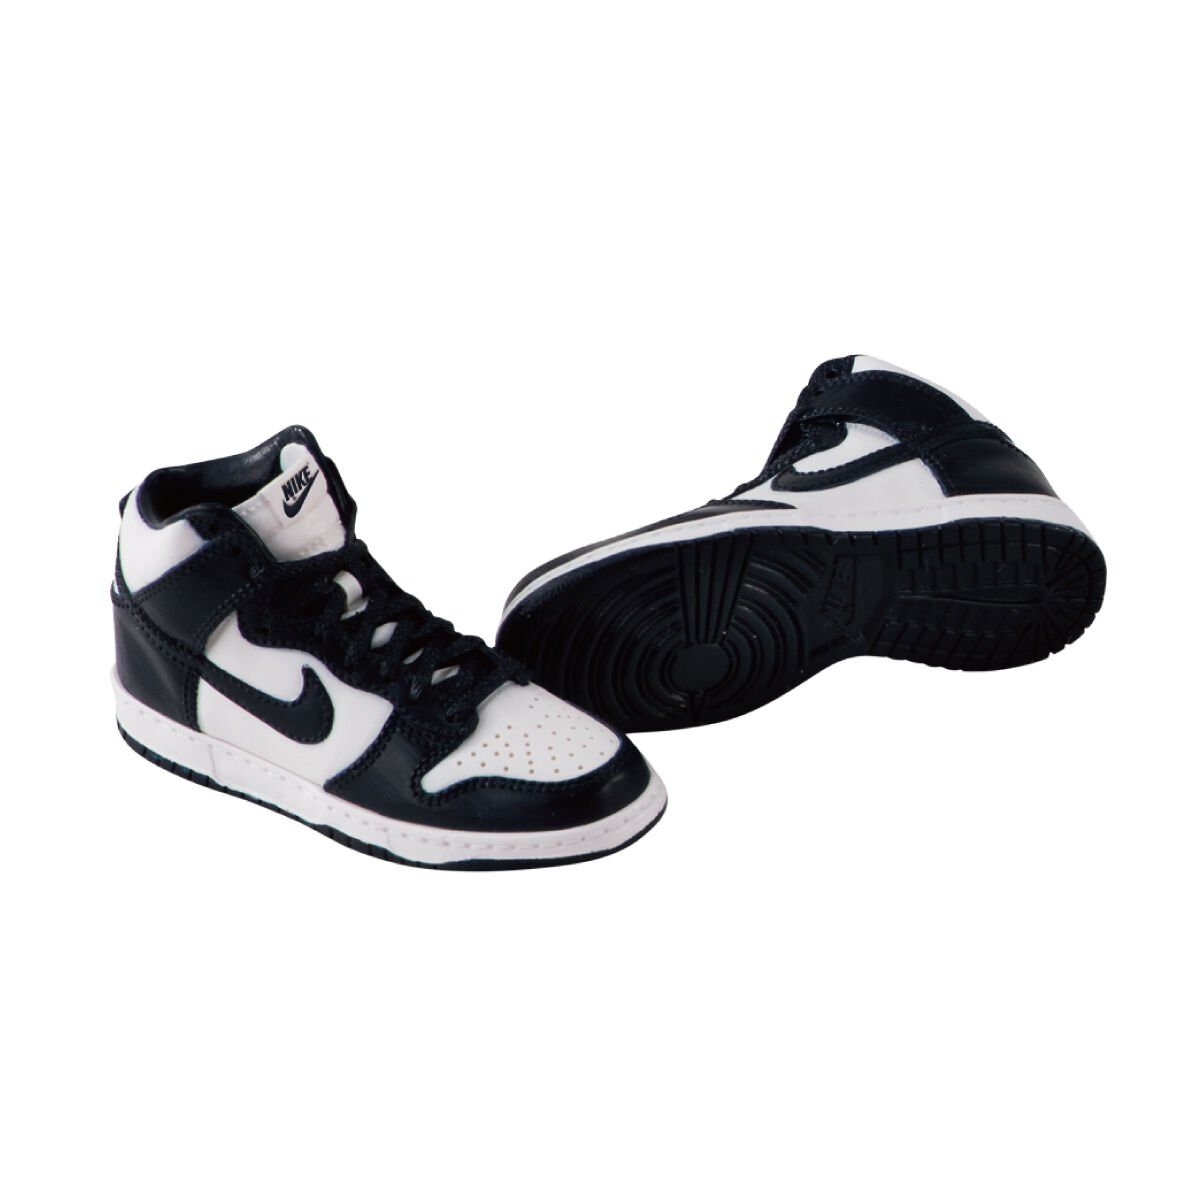 gashapon-nike-dunk-high-miniature-collection-release-20210905